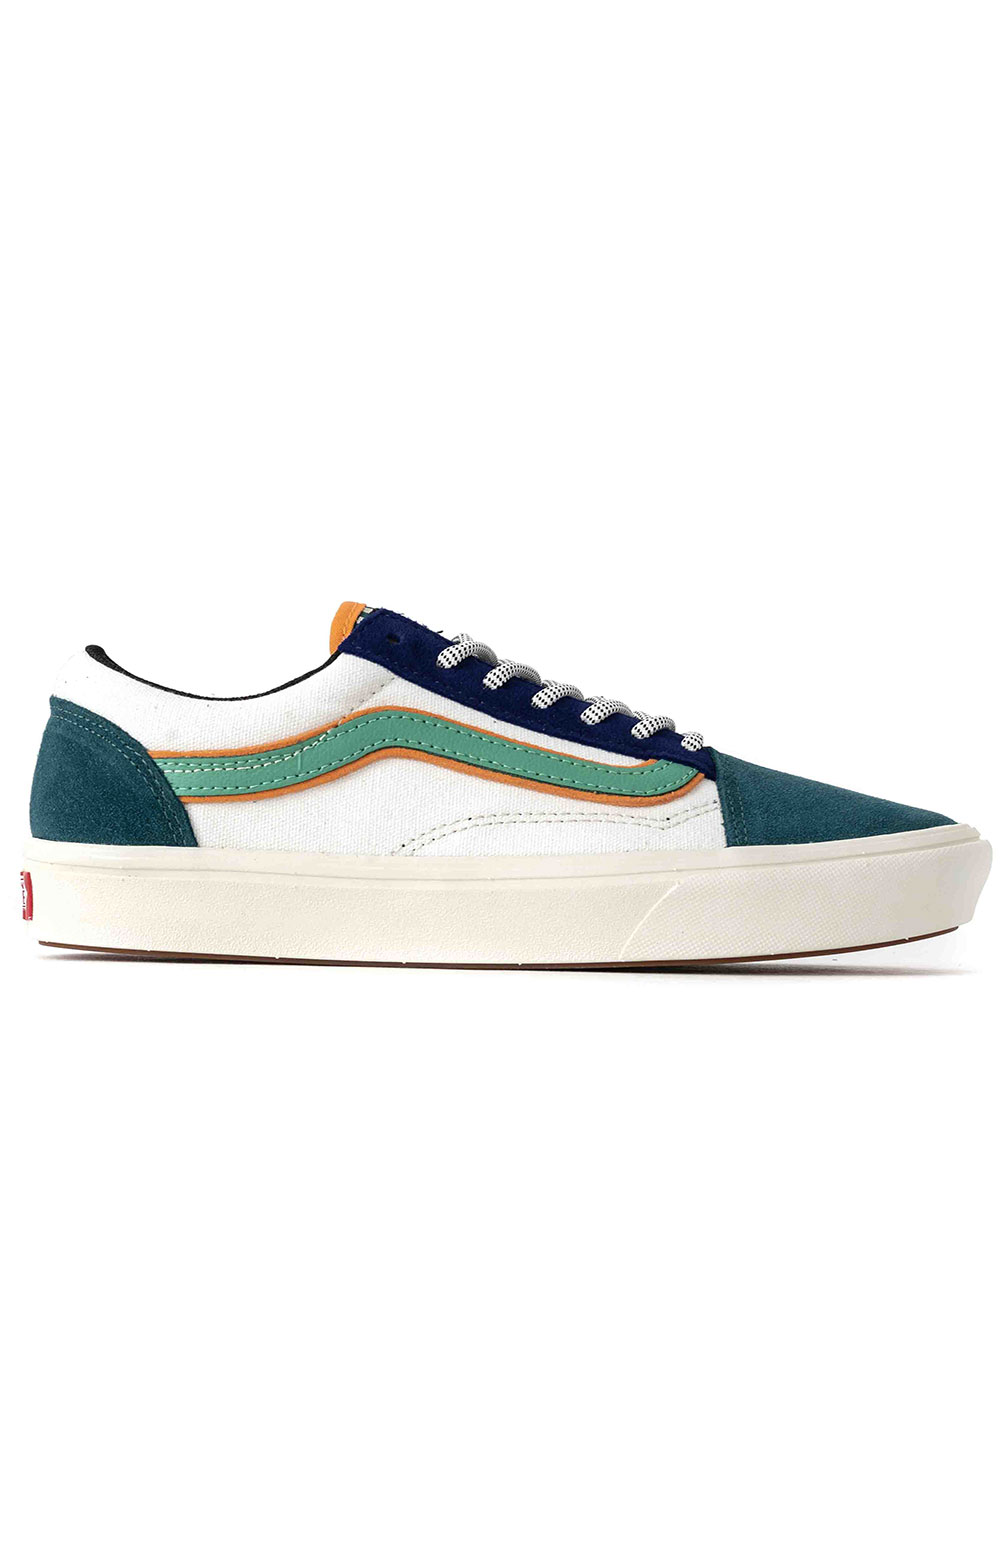 (WMAWWF) Bugs Old Skool ComfyCush Shoe - Multi